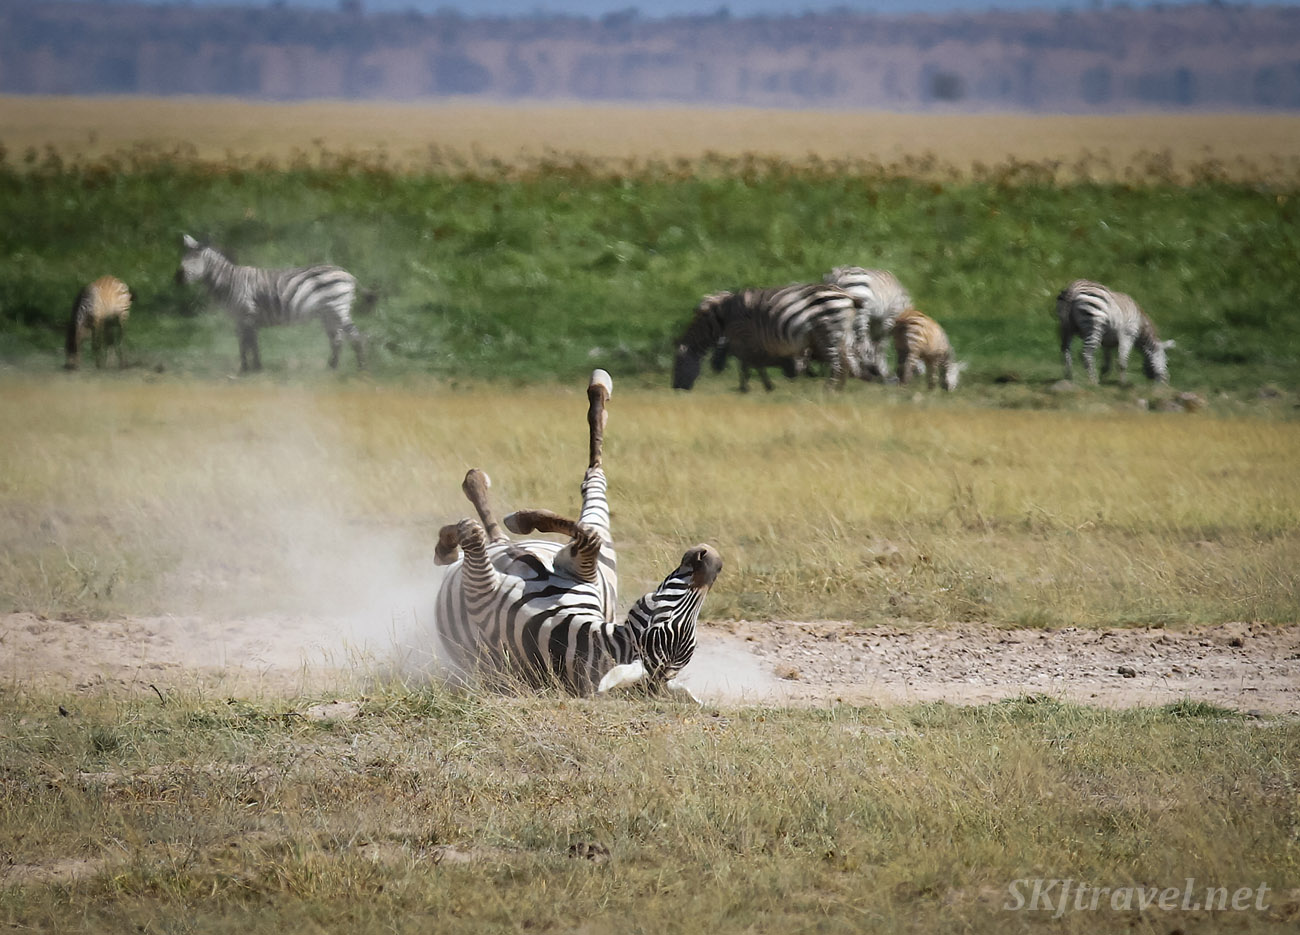 Zebra rolling on its back, Amboseli, Kenya.